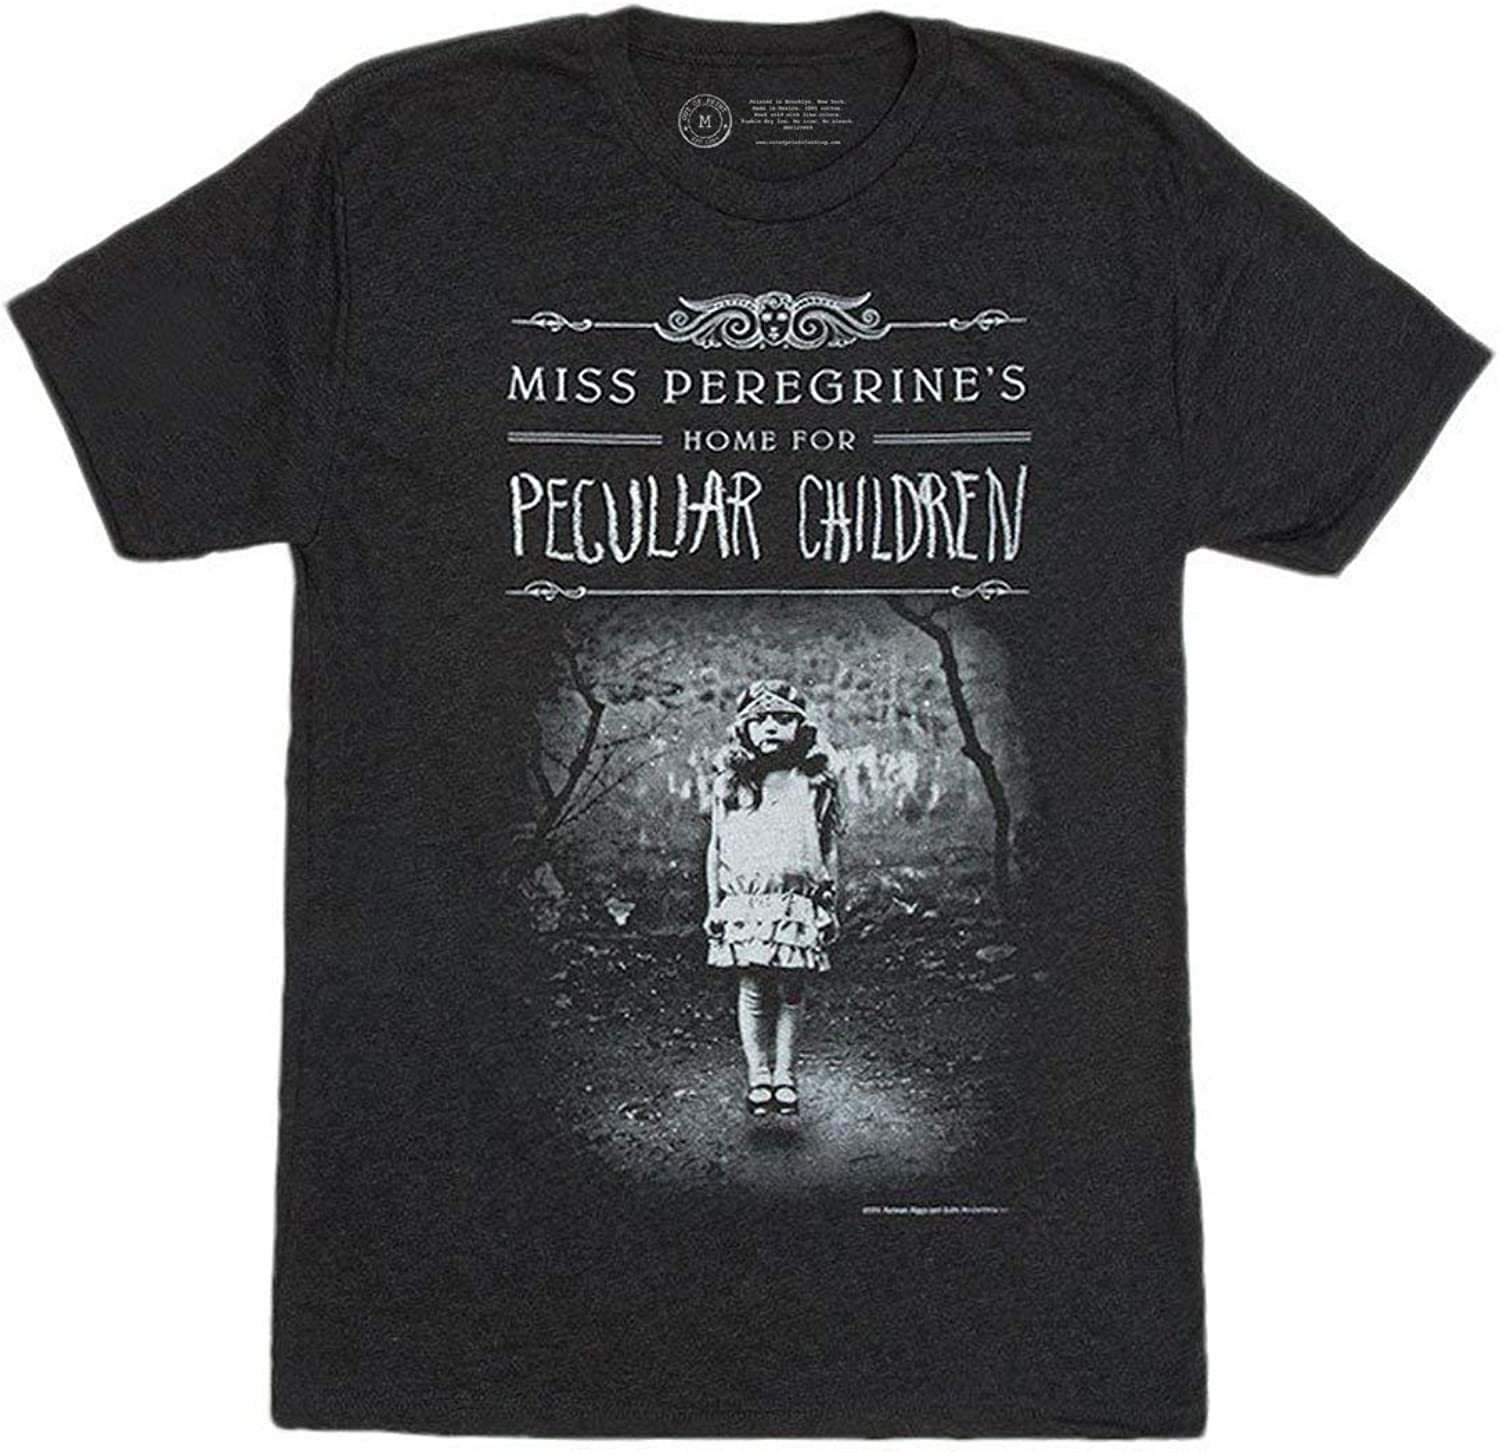 Top 7 Miss Peregrine's Home For Peculiar Children Merchandise